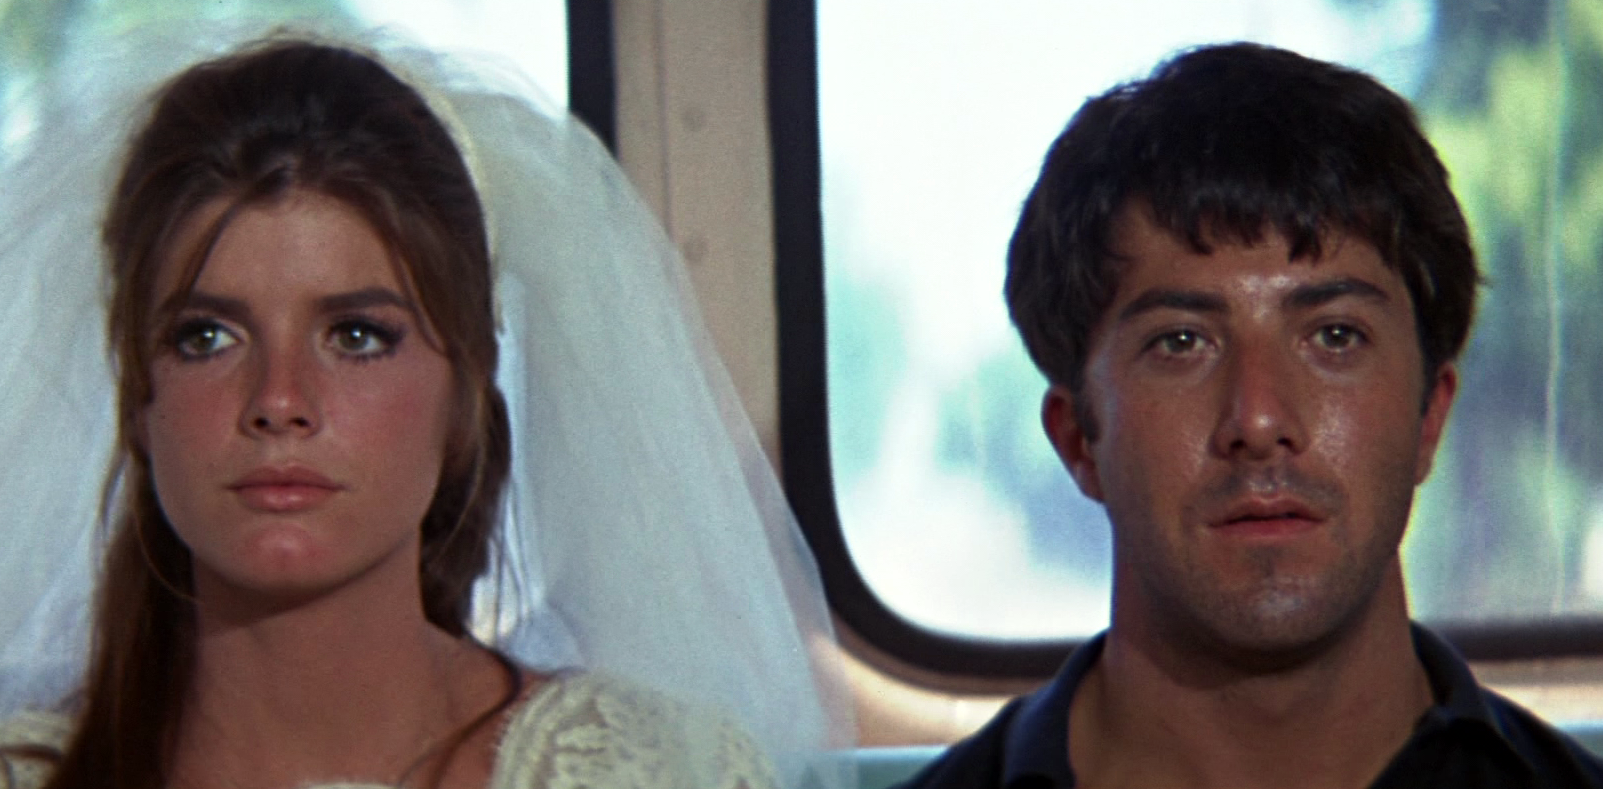 the_graduate_ending_shot_elaine_and_benjamin_on_bus